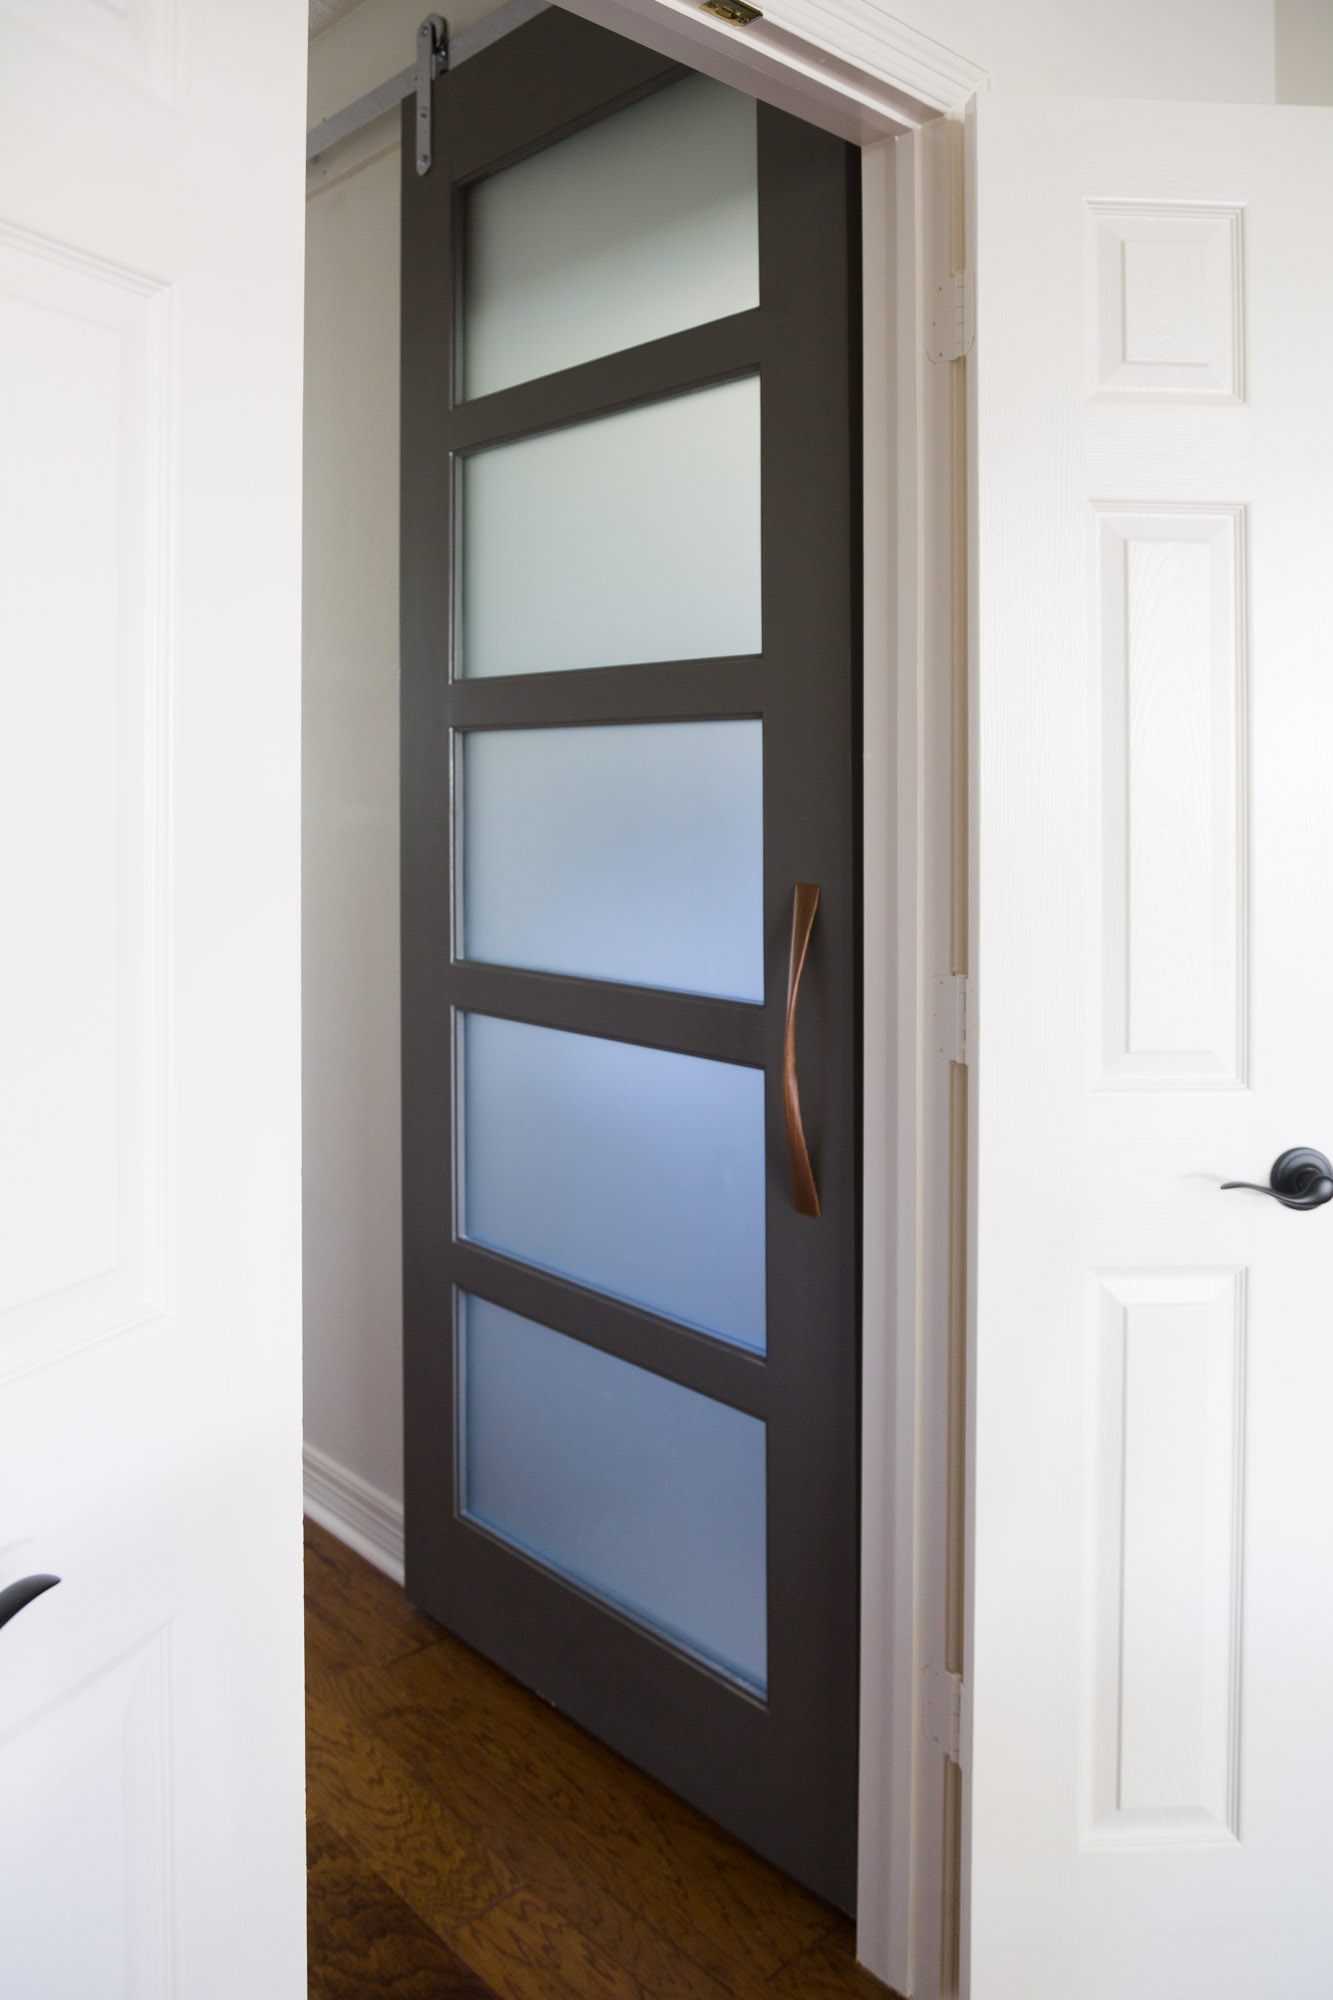 New barn door at laundry room that kept door swing out of that crowded space and provided a nice detail in this hallway. See more about  this job at this link.  | Interior Design Trends For The New Year! #interiordesigntrends #remodelingtrends #barndoor